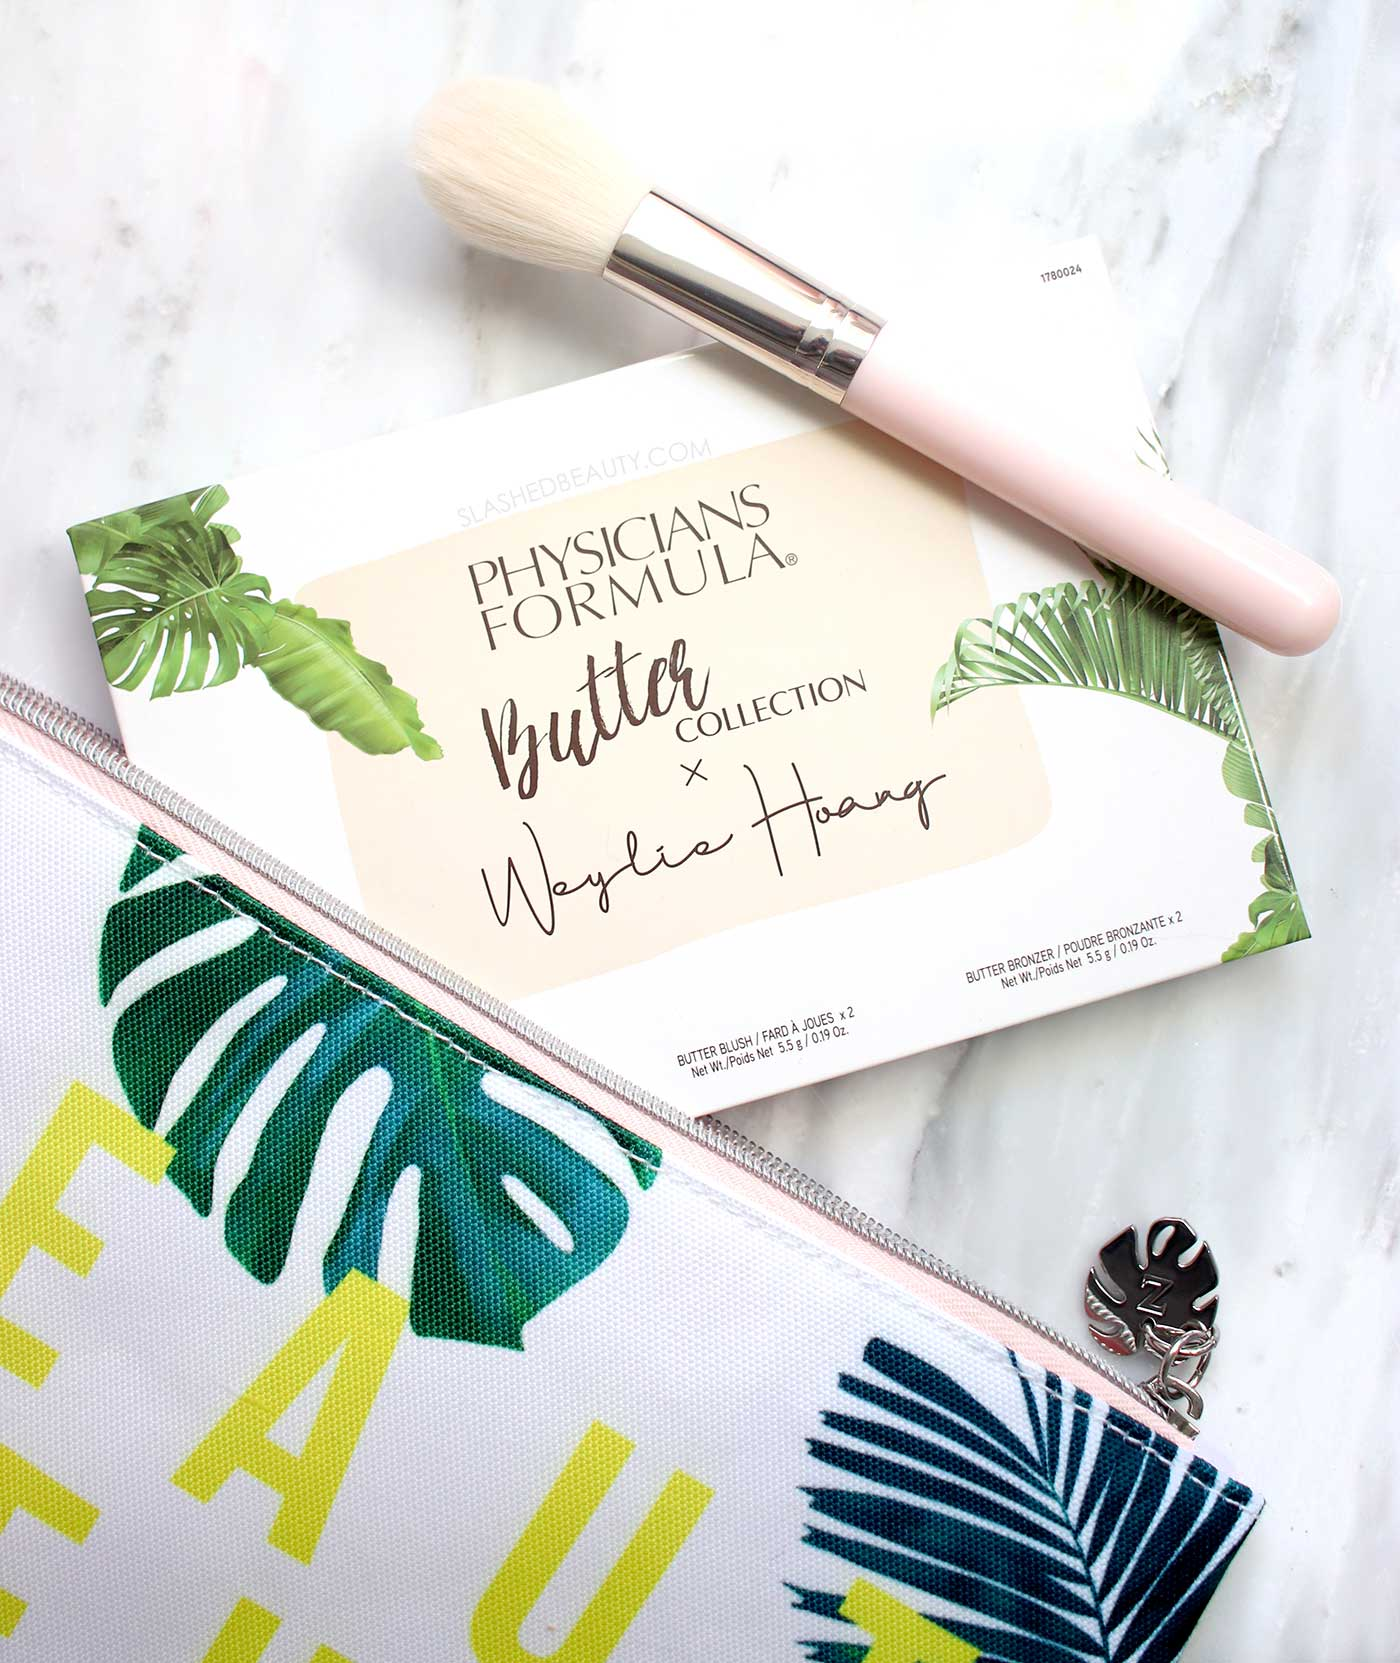 Physicians Formula Butter Collection x Weylie Hoang Palette Review & Swatches | Slashed Beauty